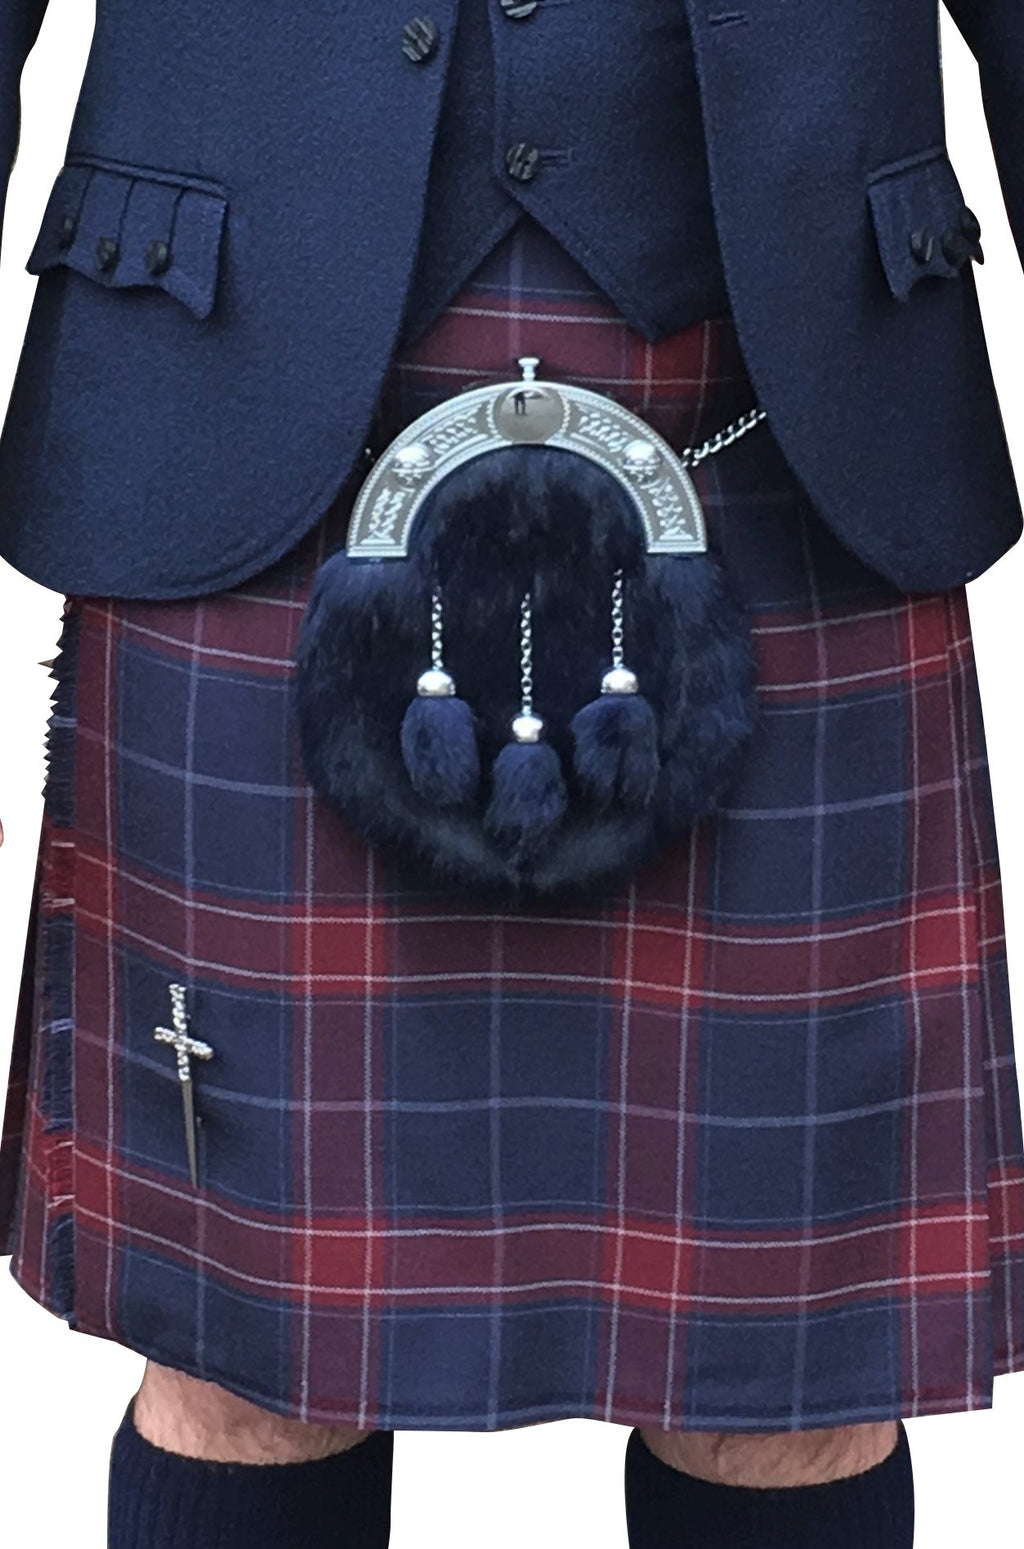 Queen of the South kilt - Anderson Kilts